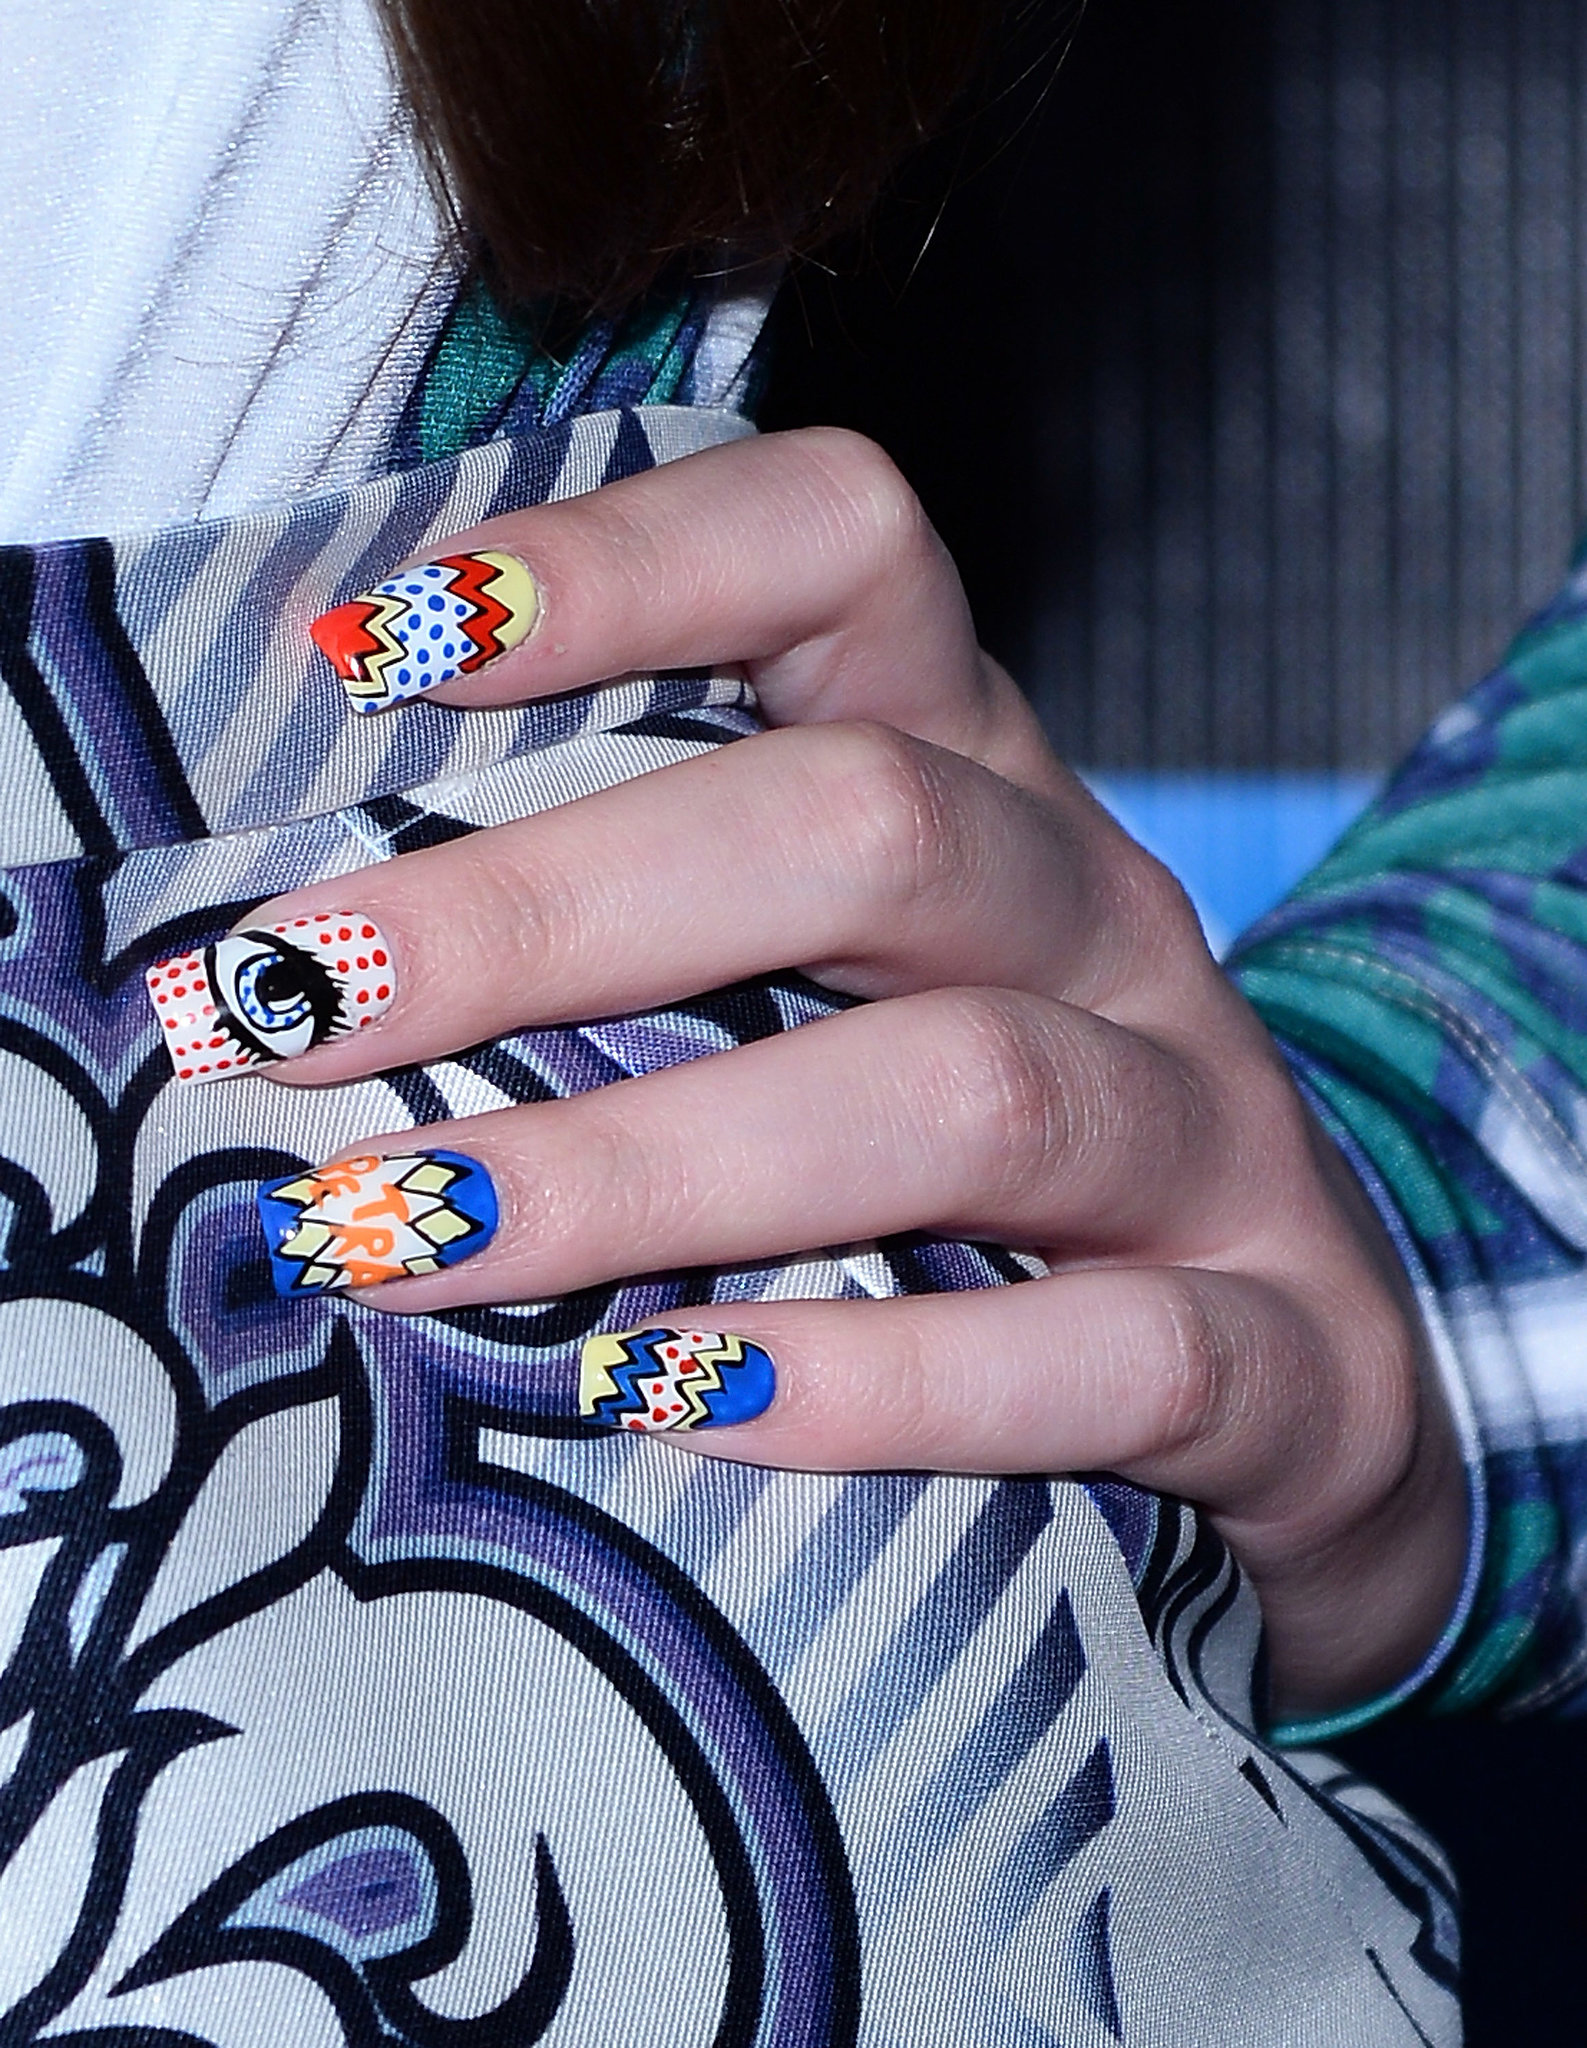 But the coolest part of Hailee's look was her nails, which featured comic-book-inspired pop art.